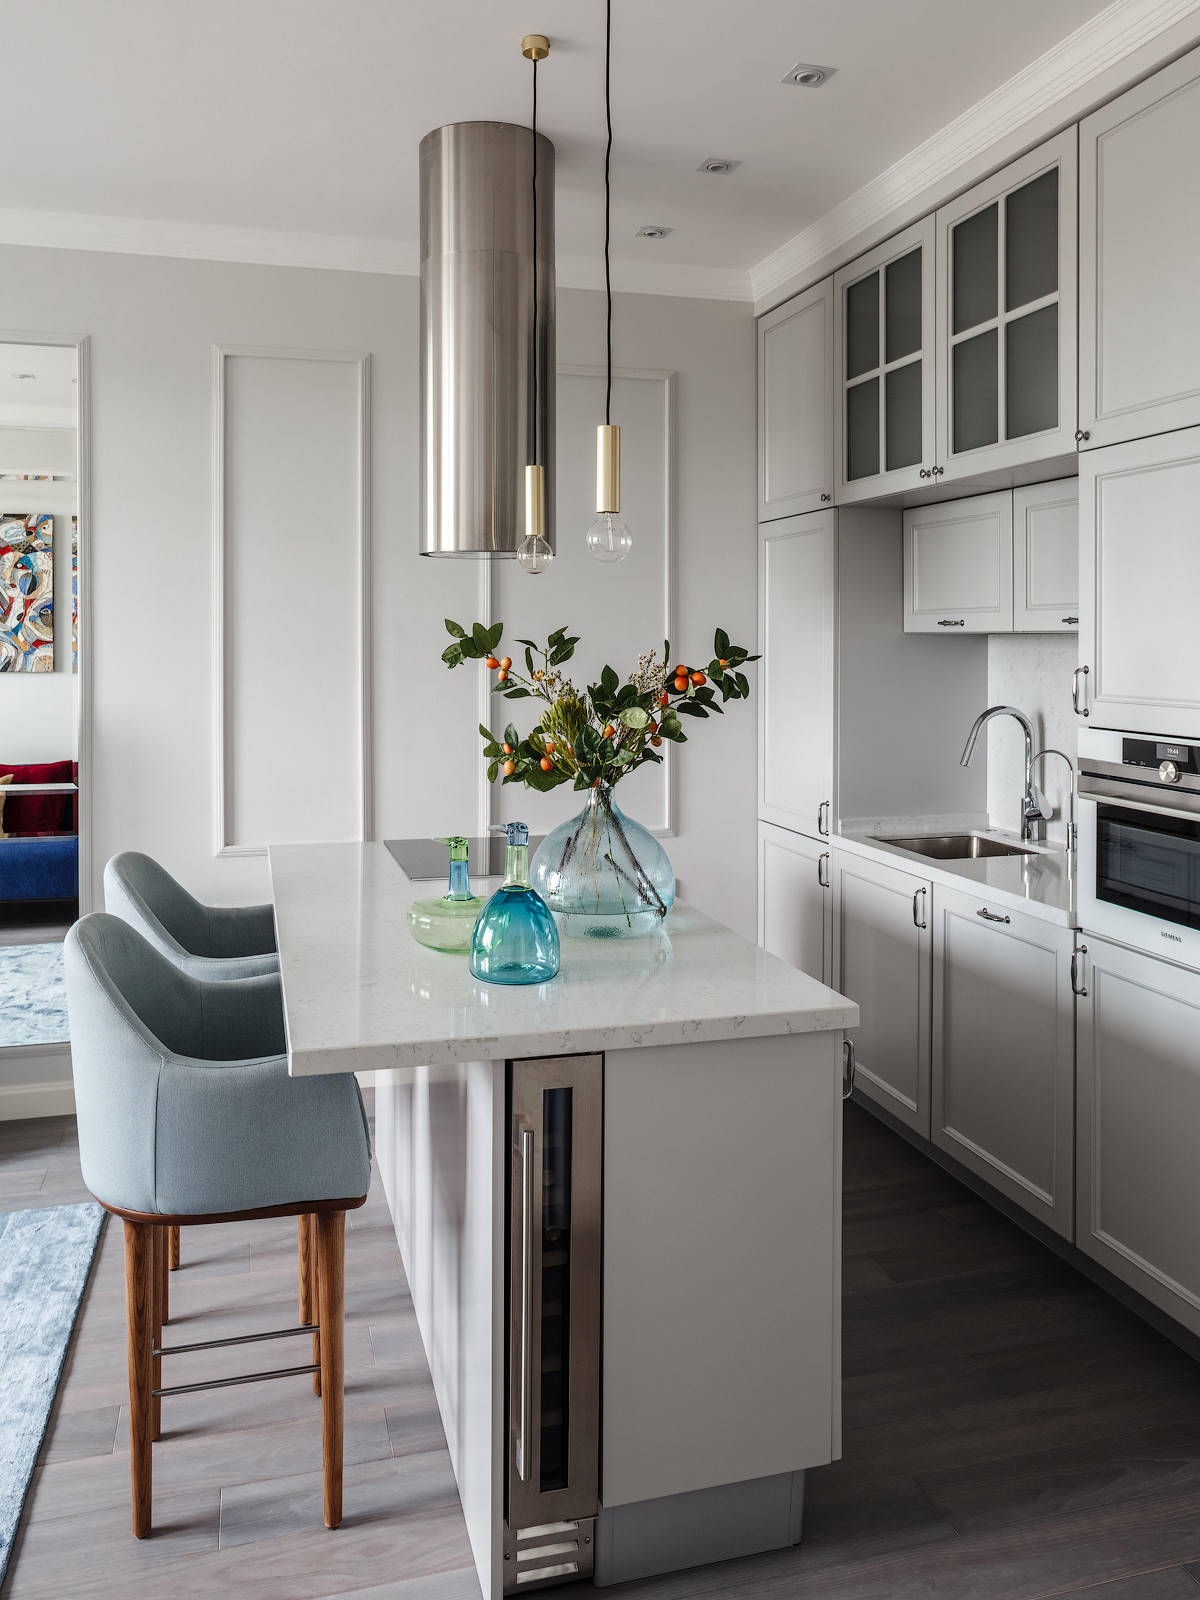 75 Beautiful Small Galley Kitchen Pictures Ideas November 2020 Houzz